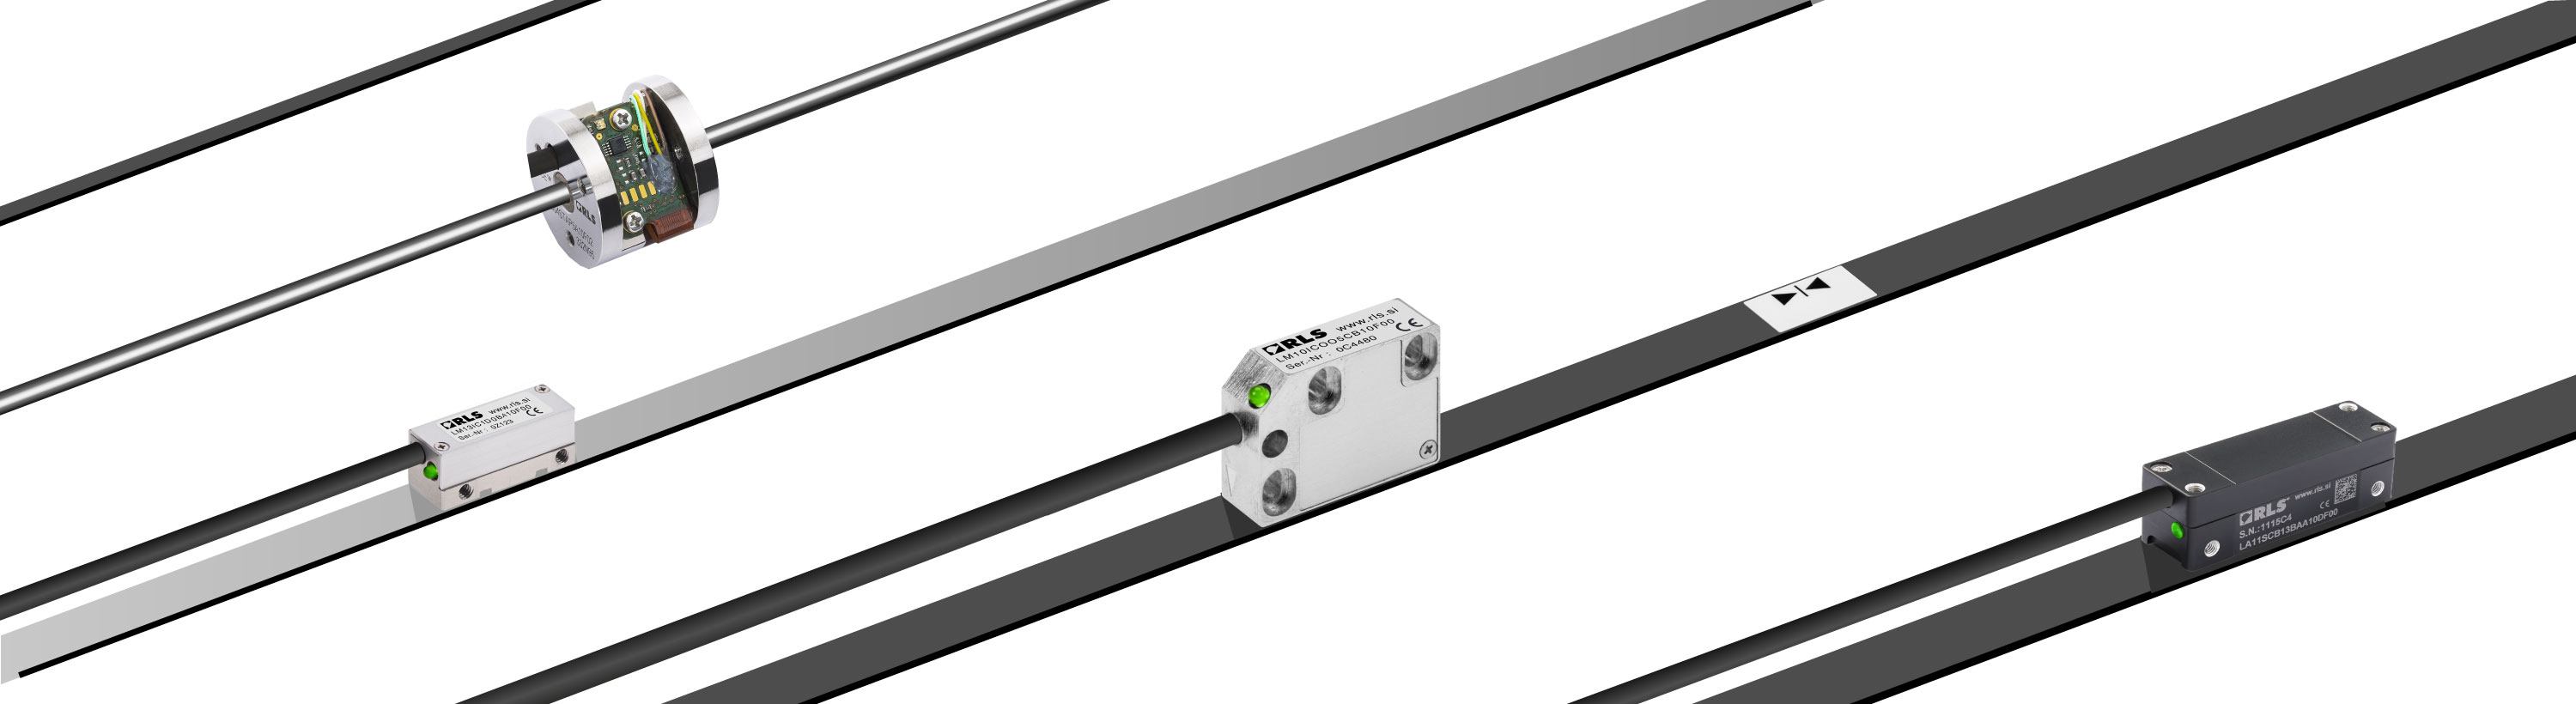 Linear magnetic encoders